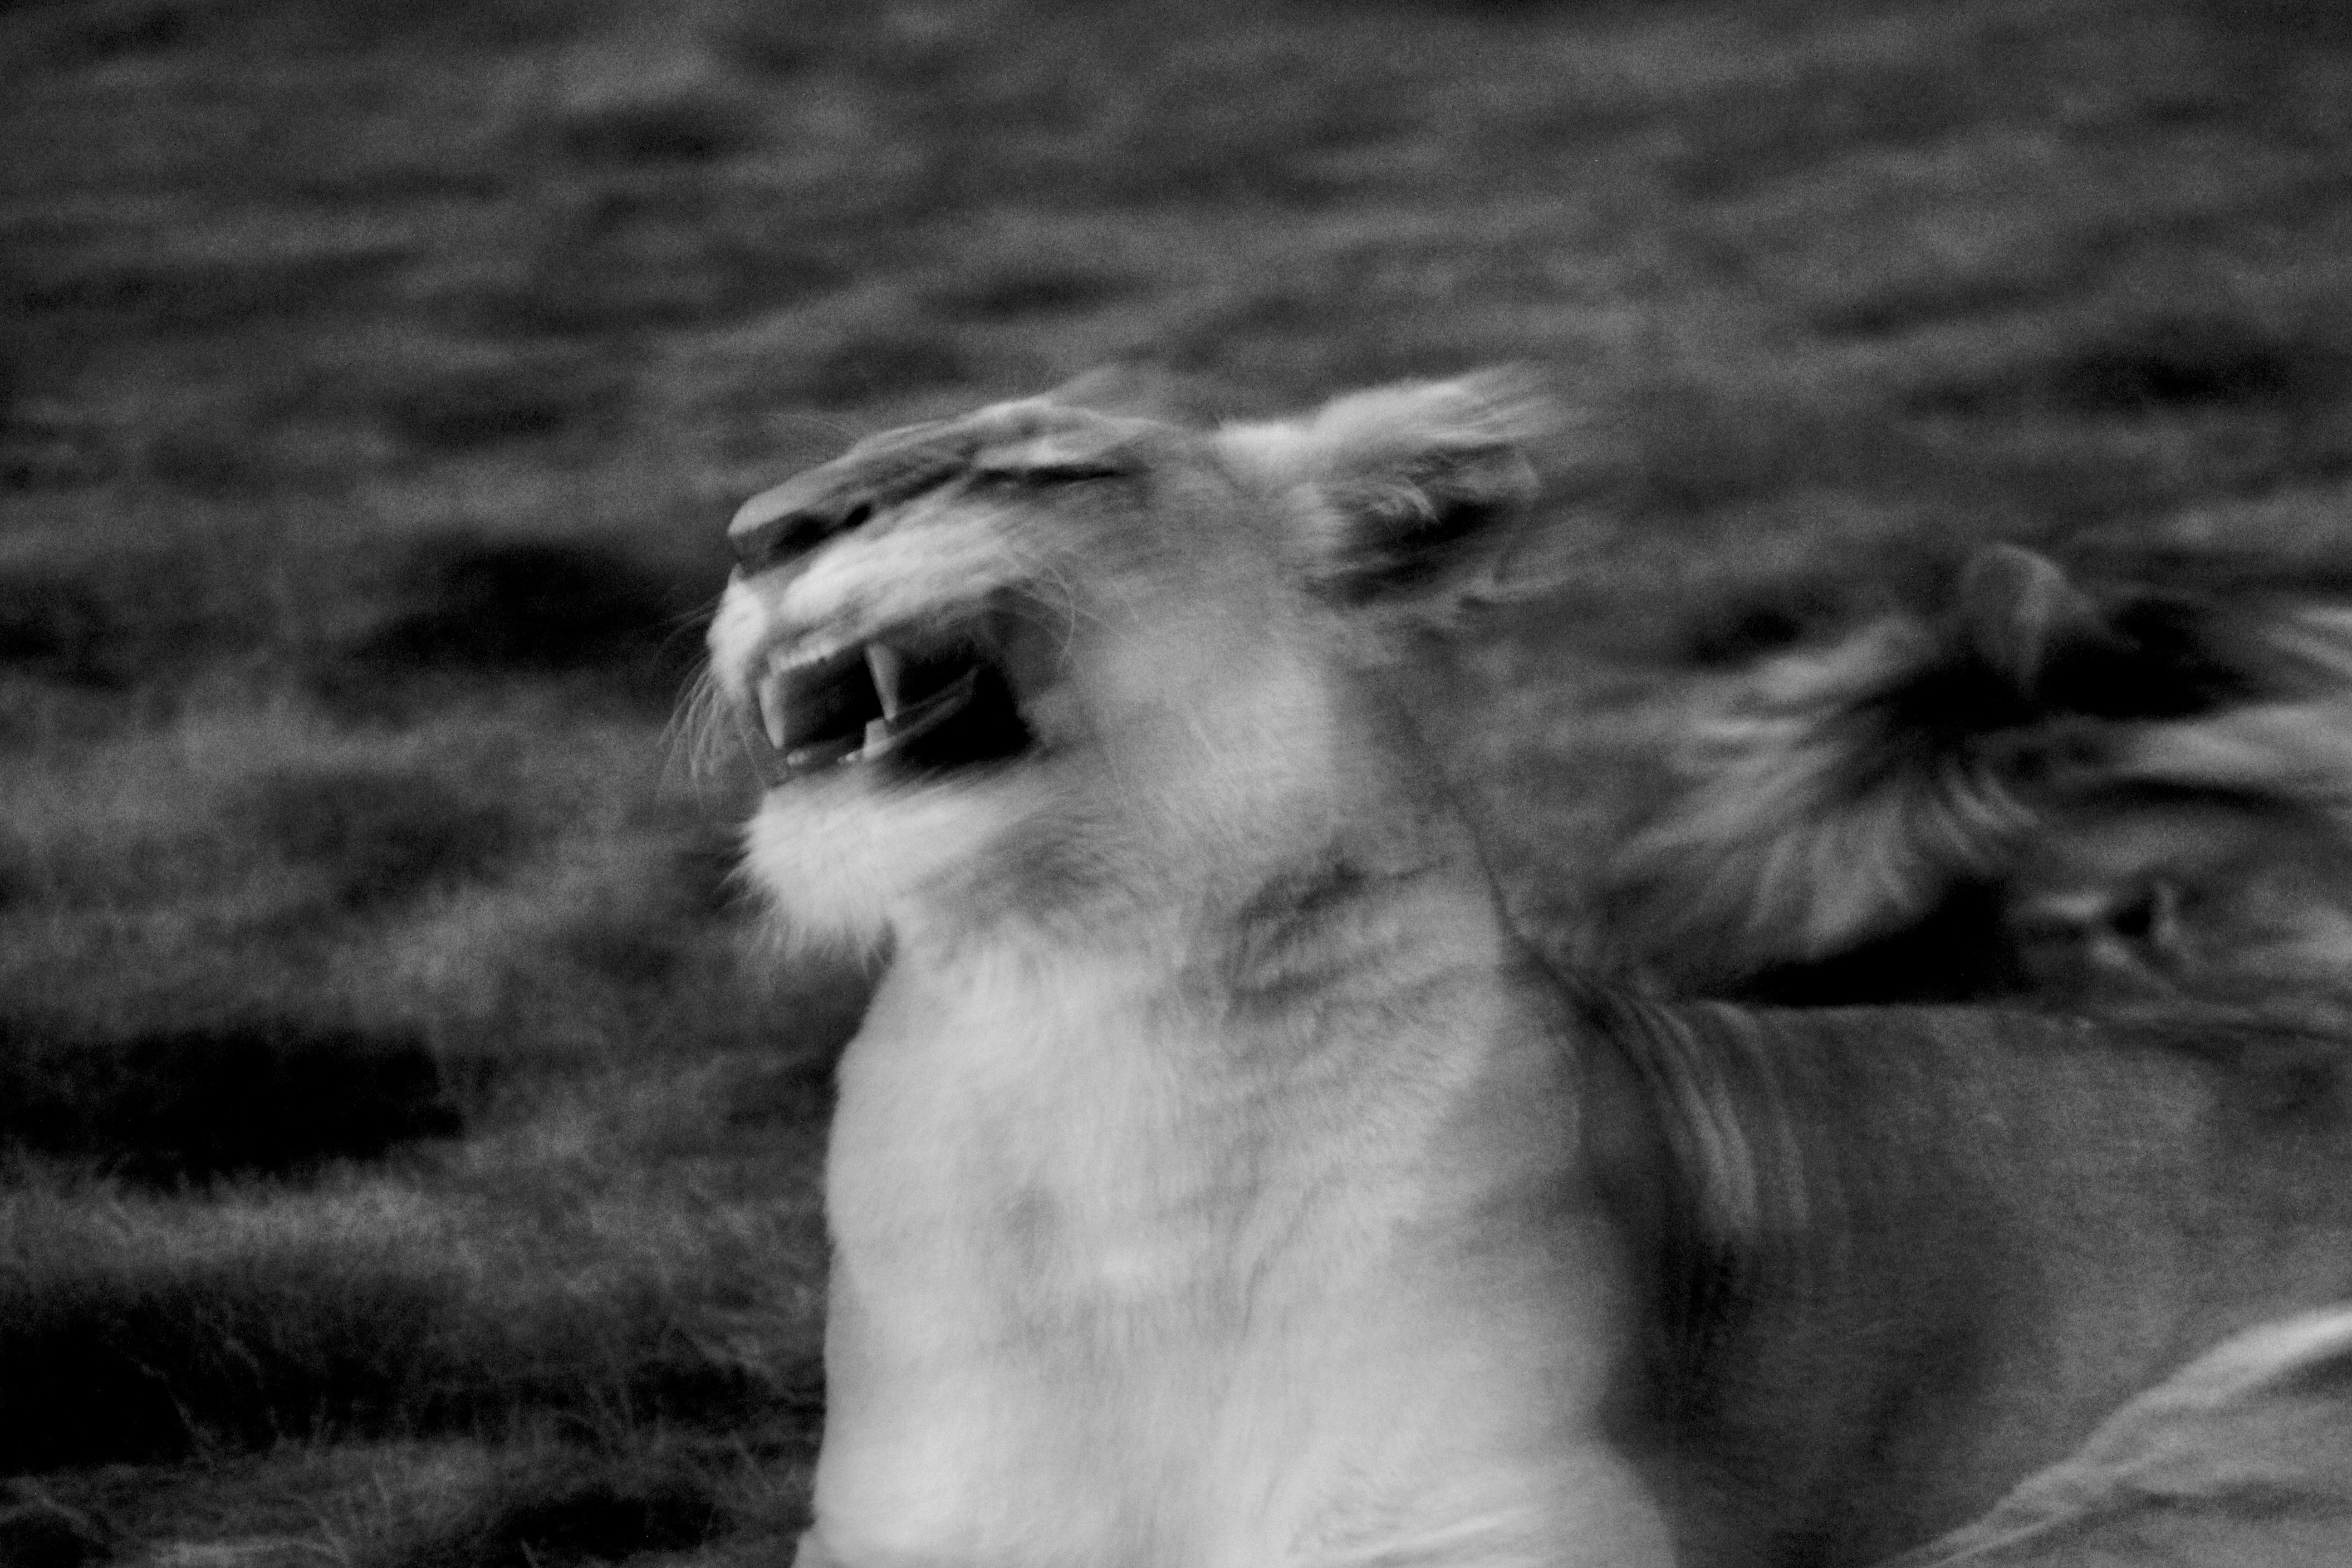 greyscale photography of roaring lioness